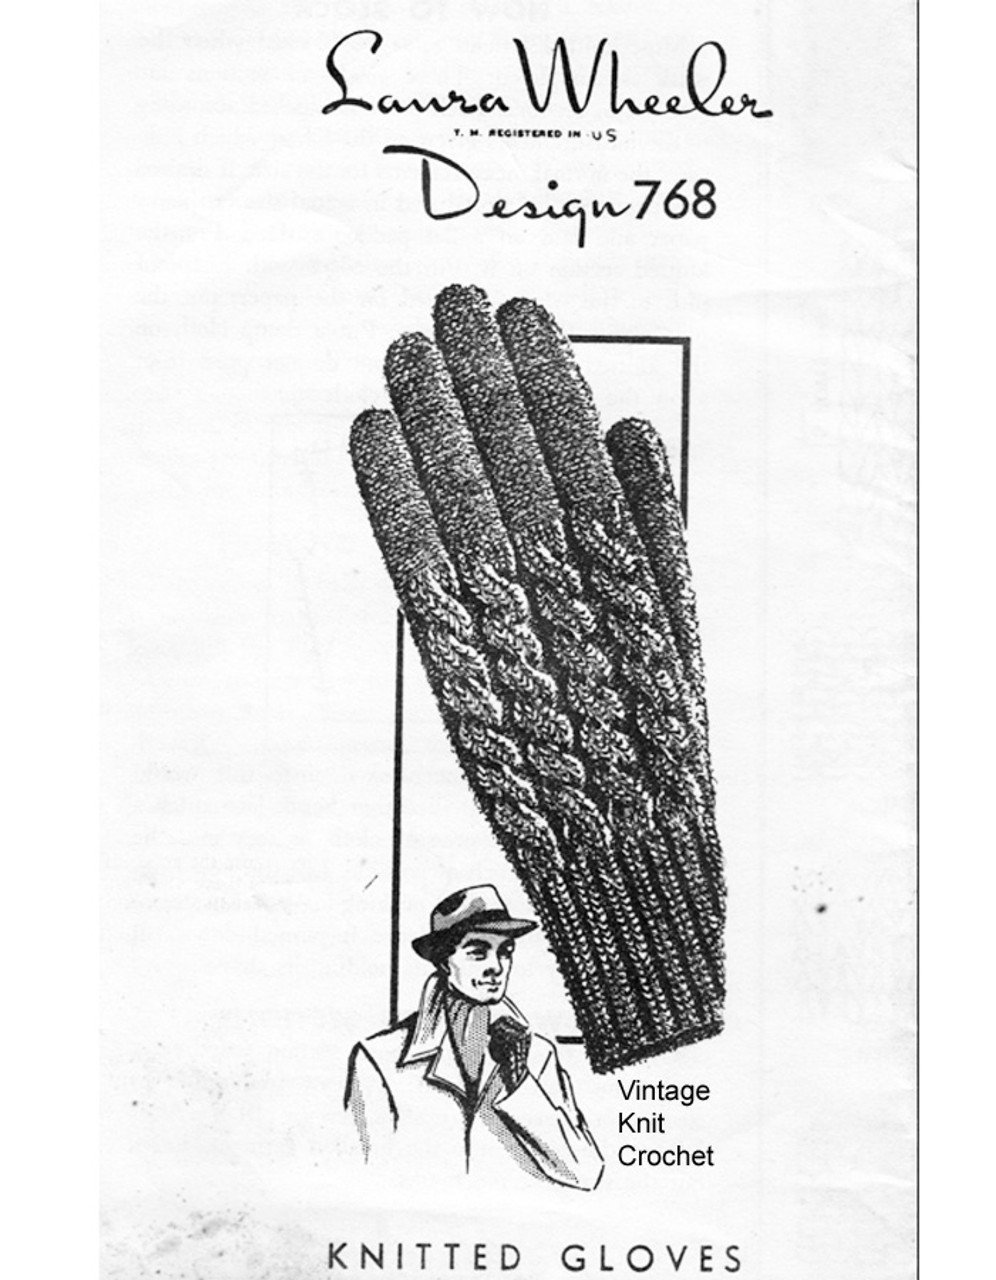 Mans Knitted Cable Gloves Pattern, Mail Order 768